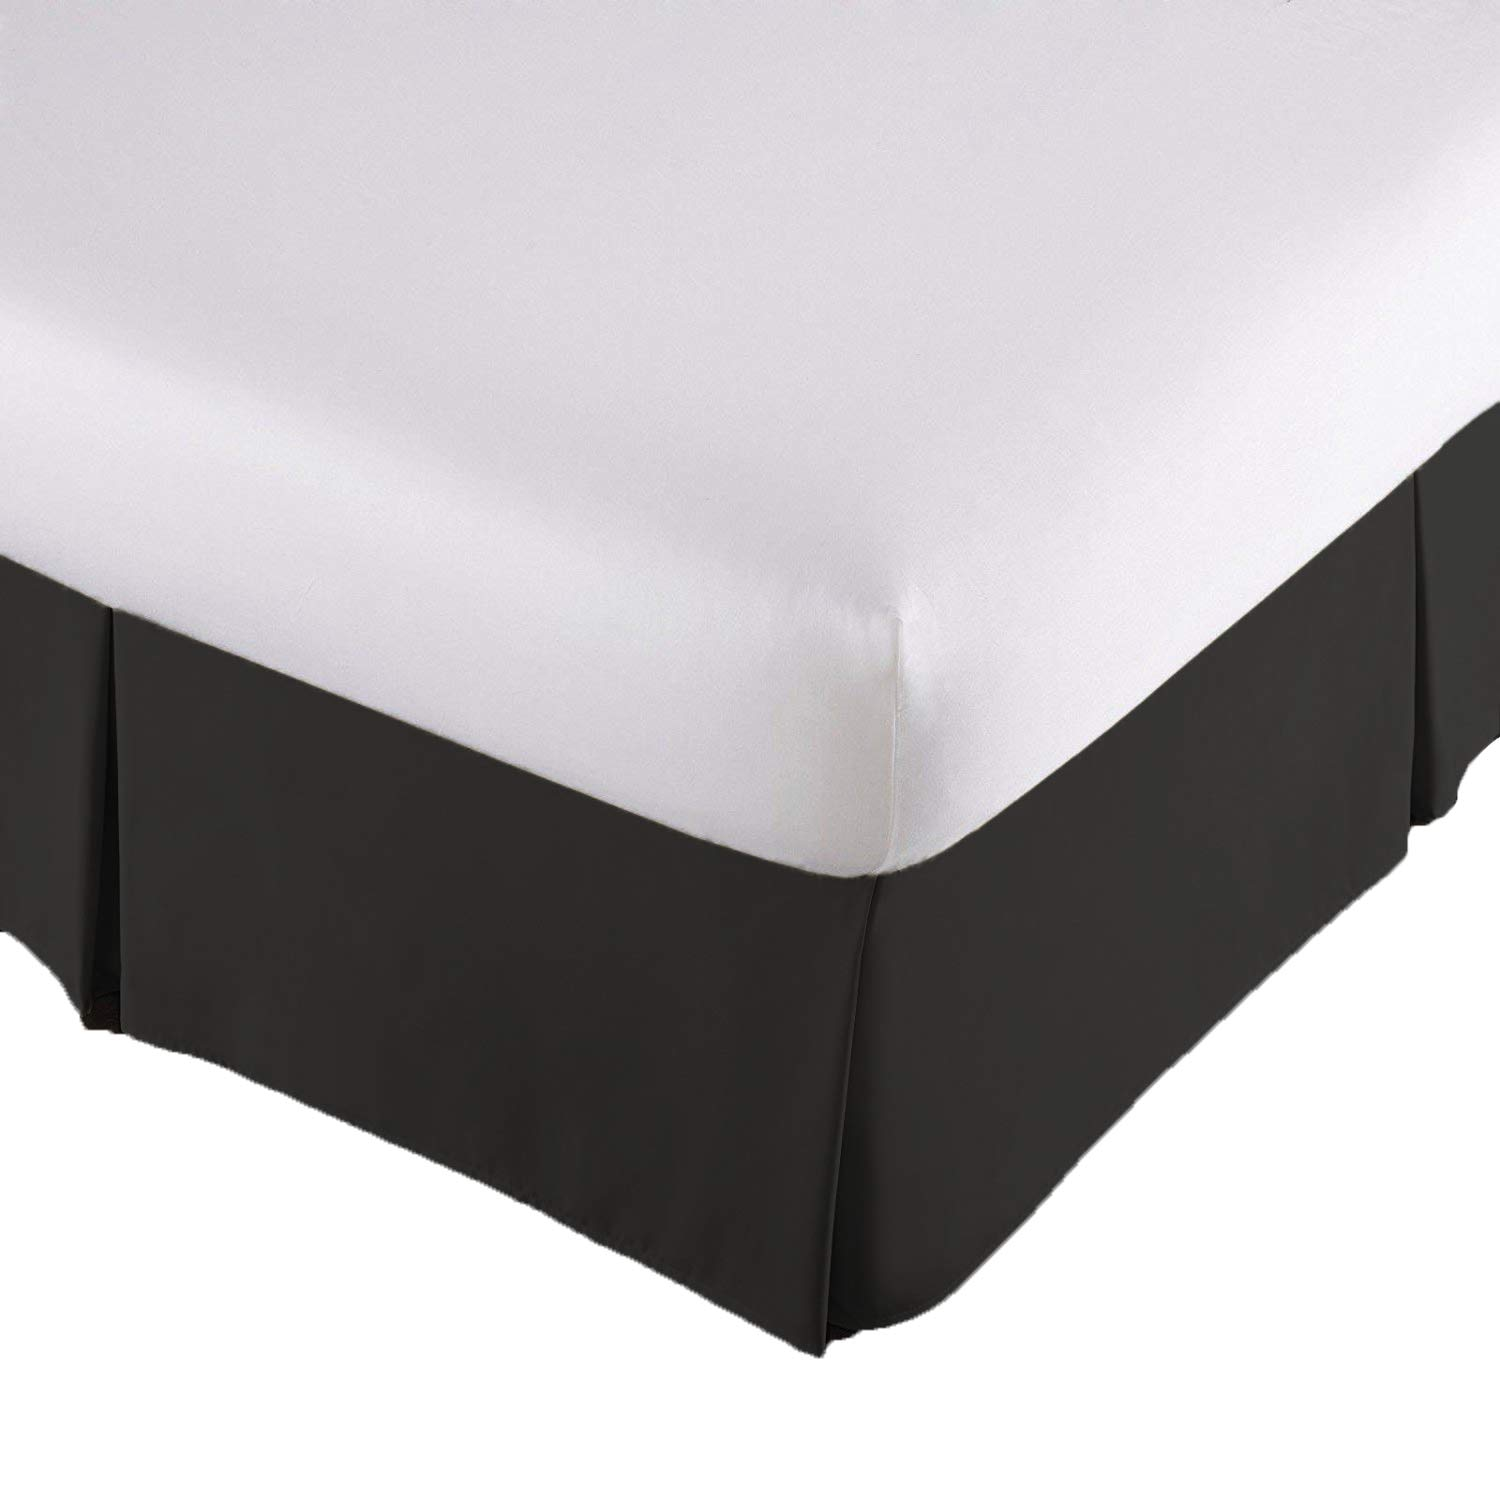 Lux Decor Collection Bed Skirt Hotel Quality (Queen, Black 14 inch Fall) - Iron Easy, Quadruple Pleated Quadruple Pleated, Wrinkle and Fade Resistant,100% (Queen, Black)